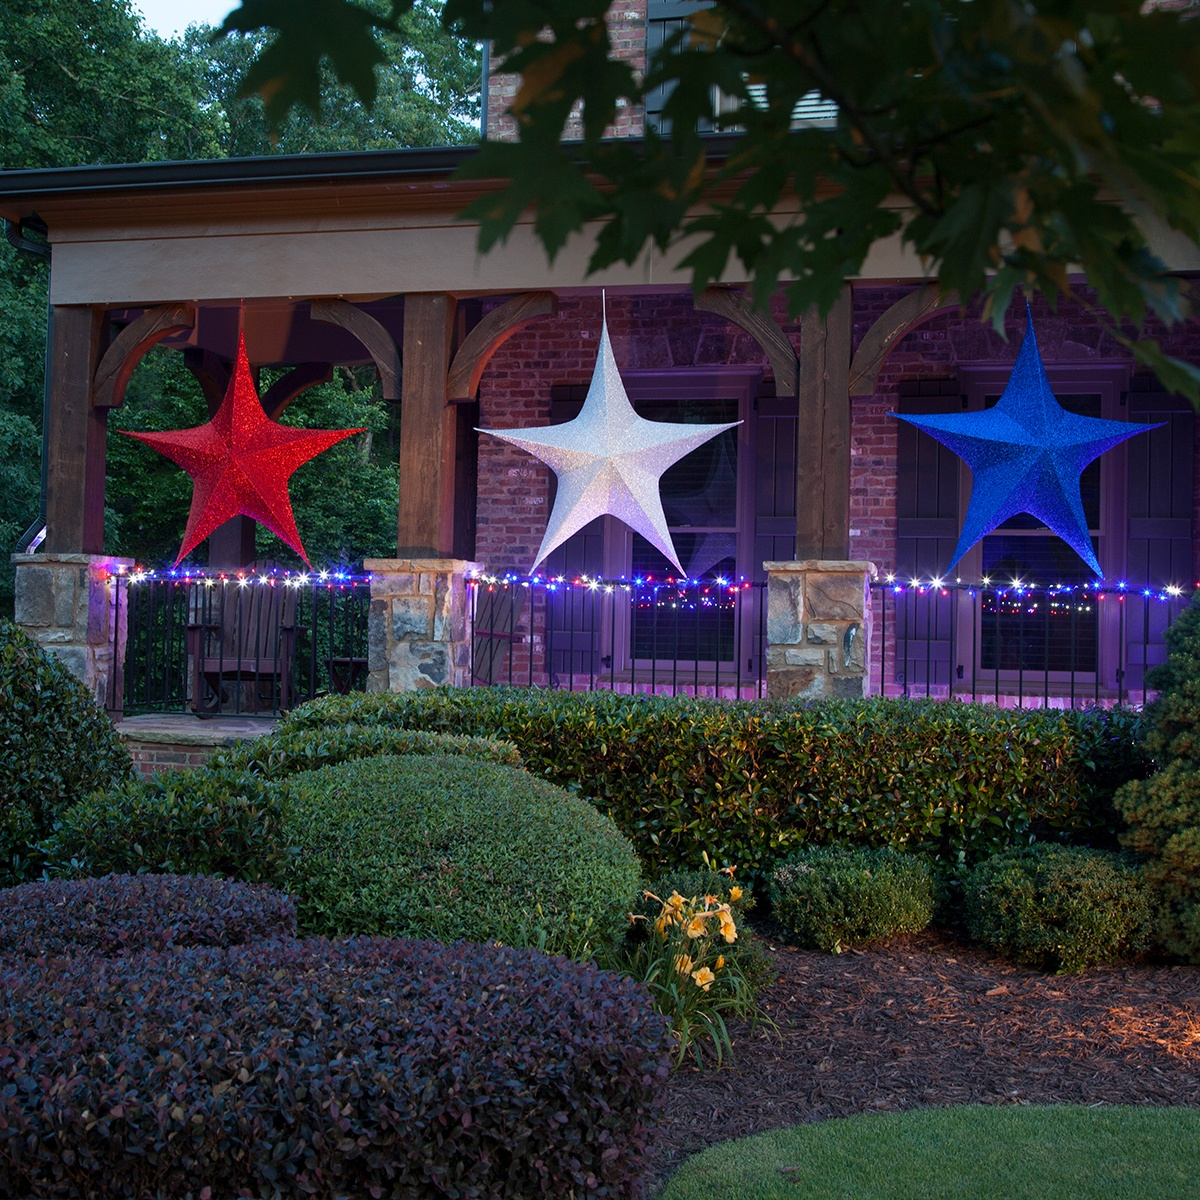 Red, White & Blue Patriotic Star Decorations